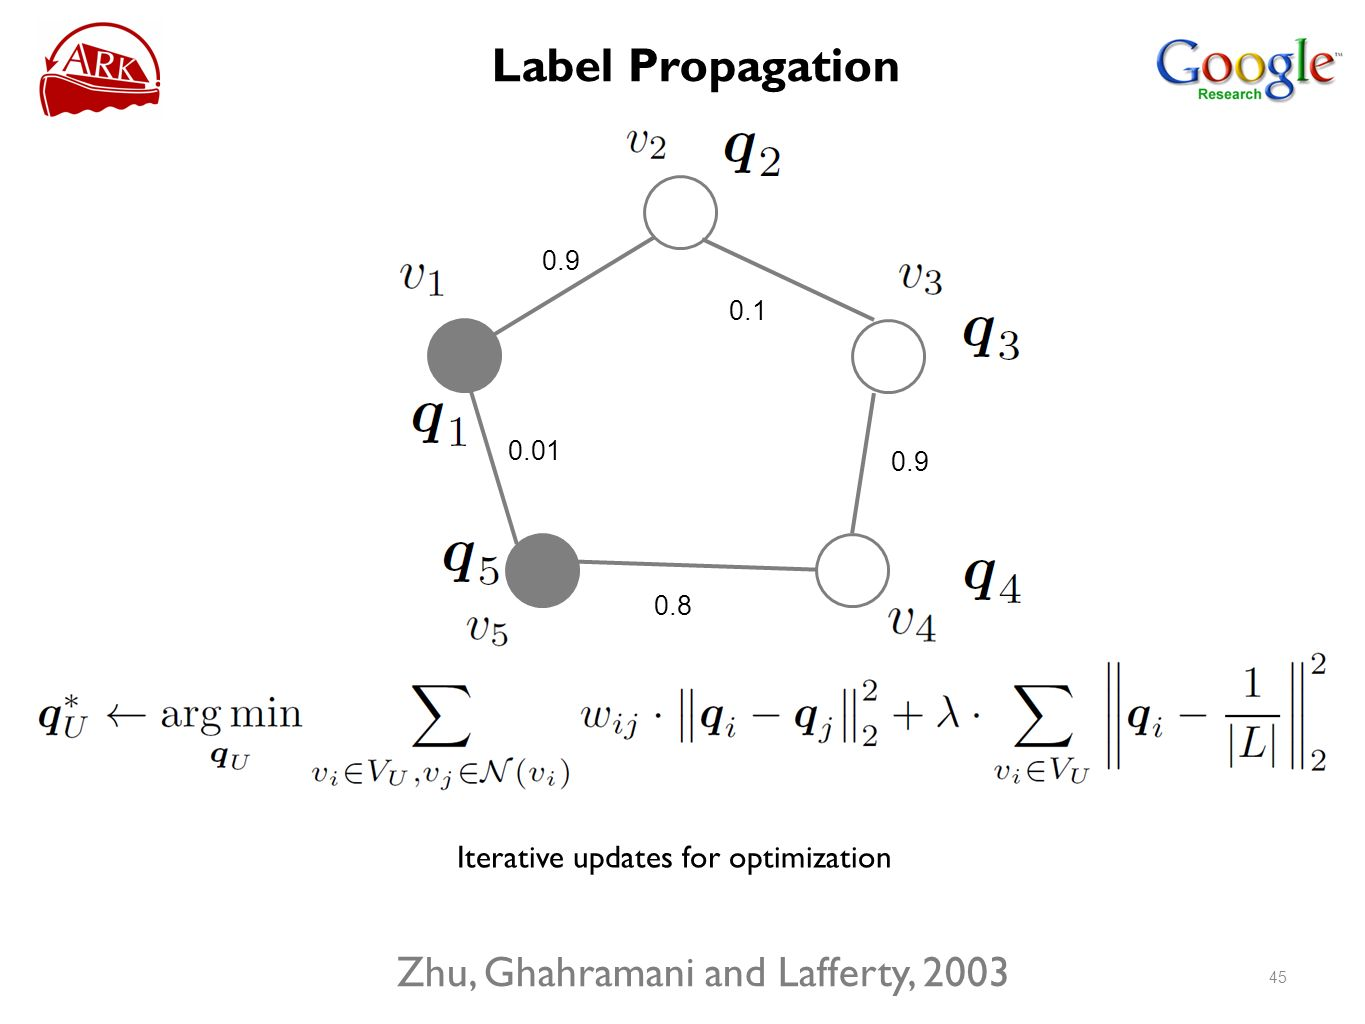 0.9 0.01 0.8 0.9 0.1 Iterative updates for optimization Zhu, Ghahramani and Lafferty, 2003 45 Label Propagation